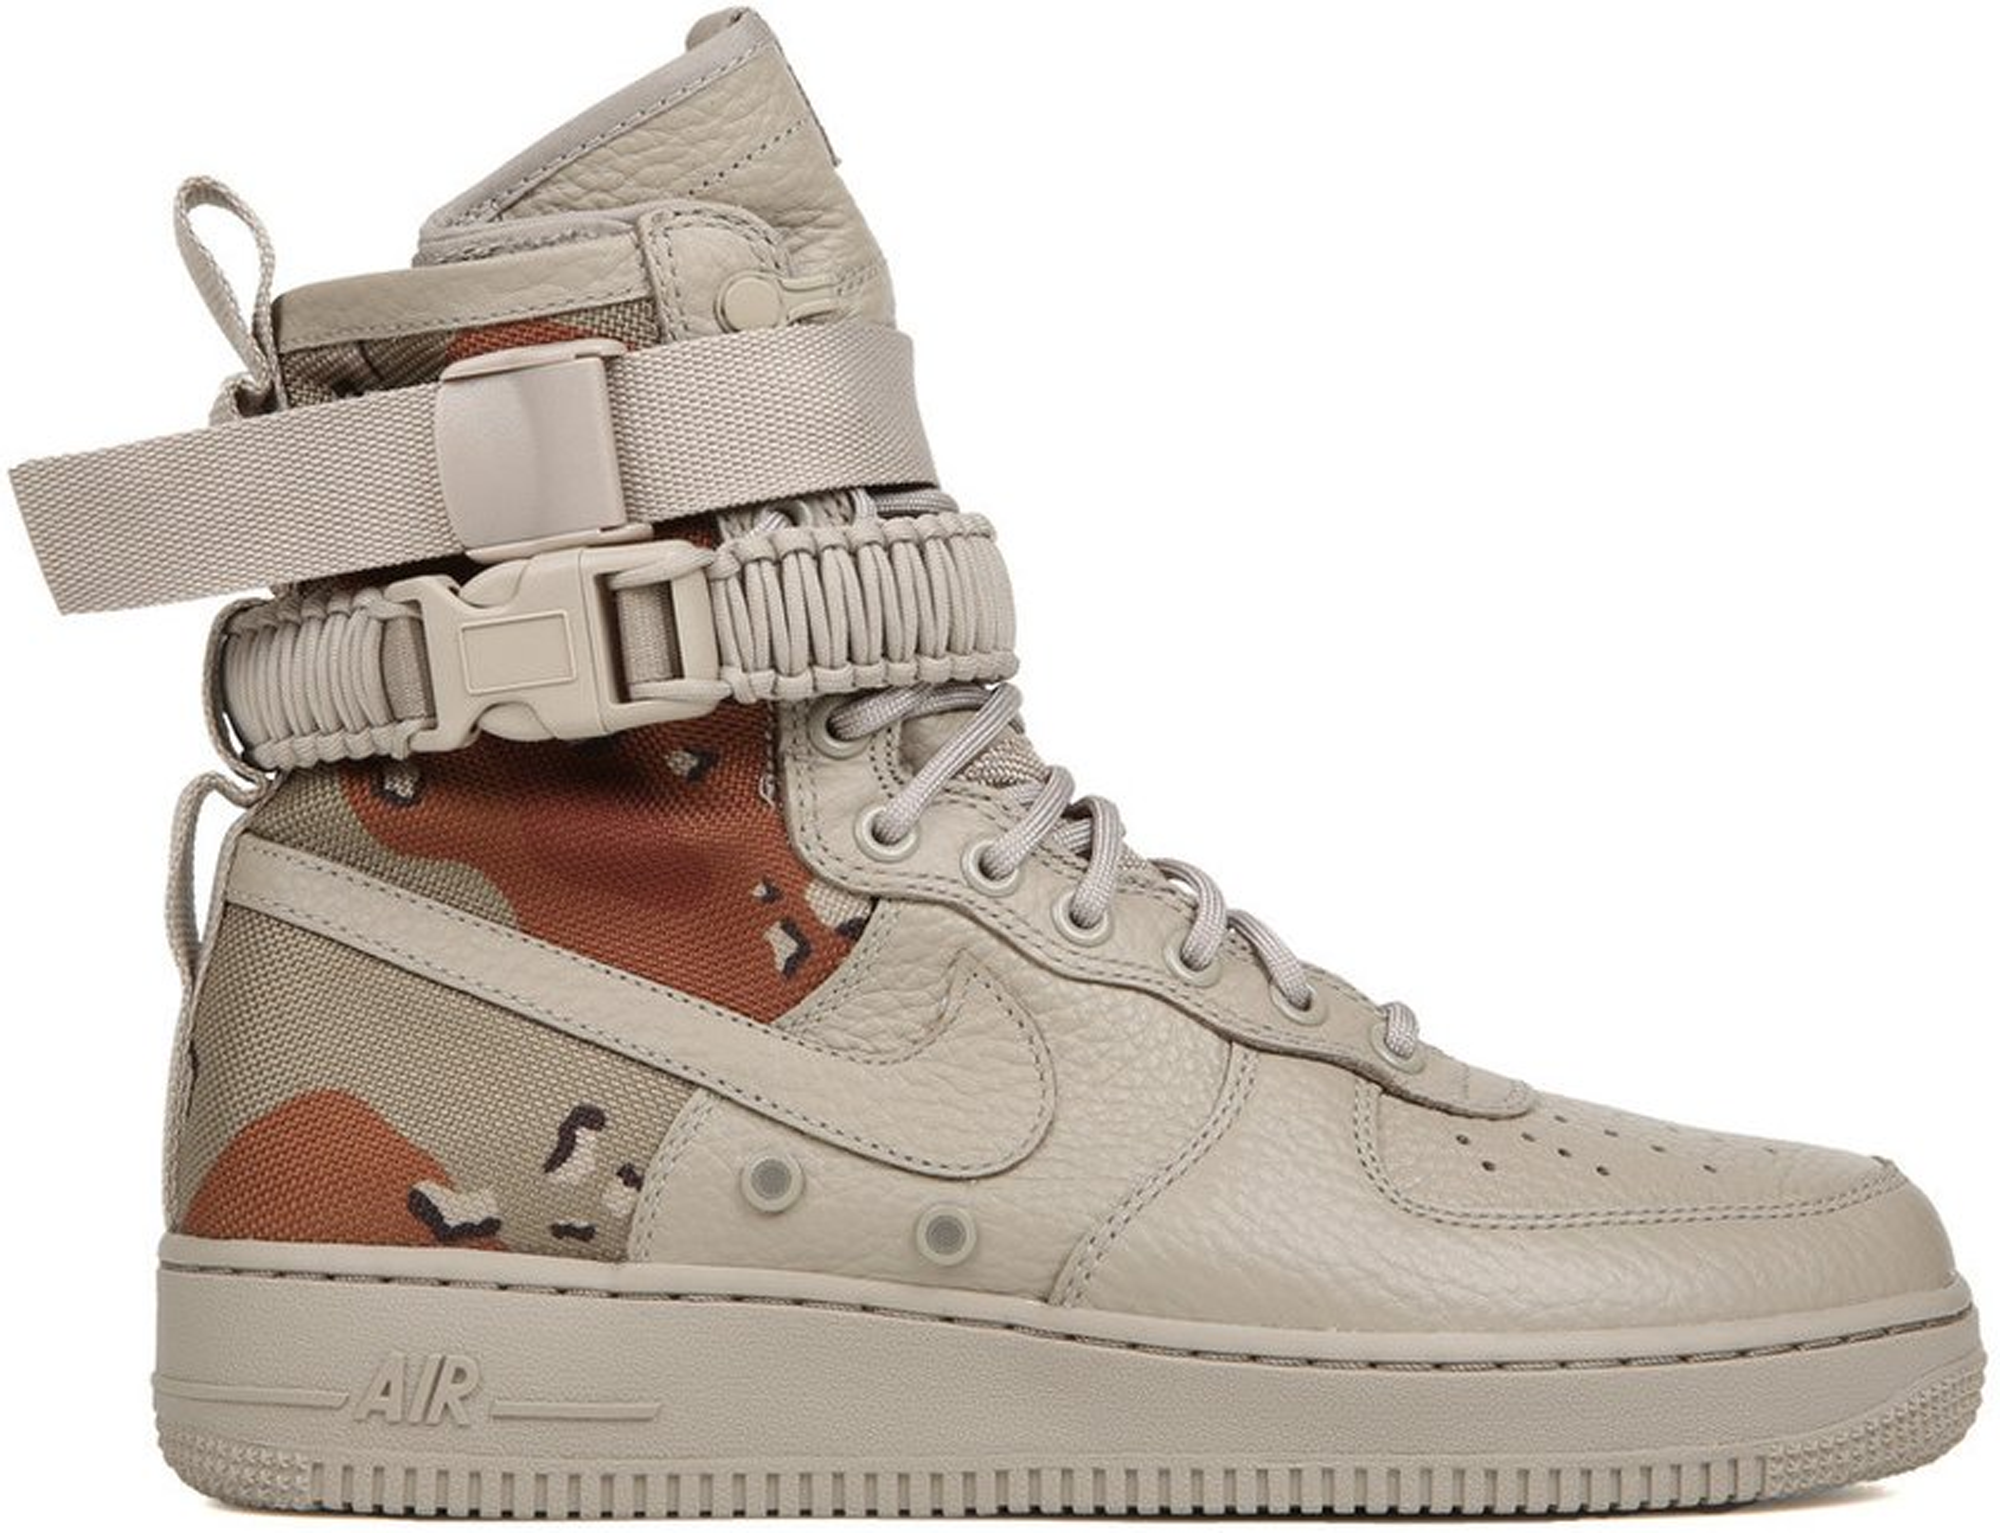 nike air force 1 desert camo